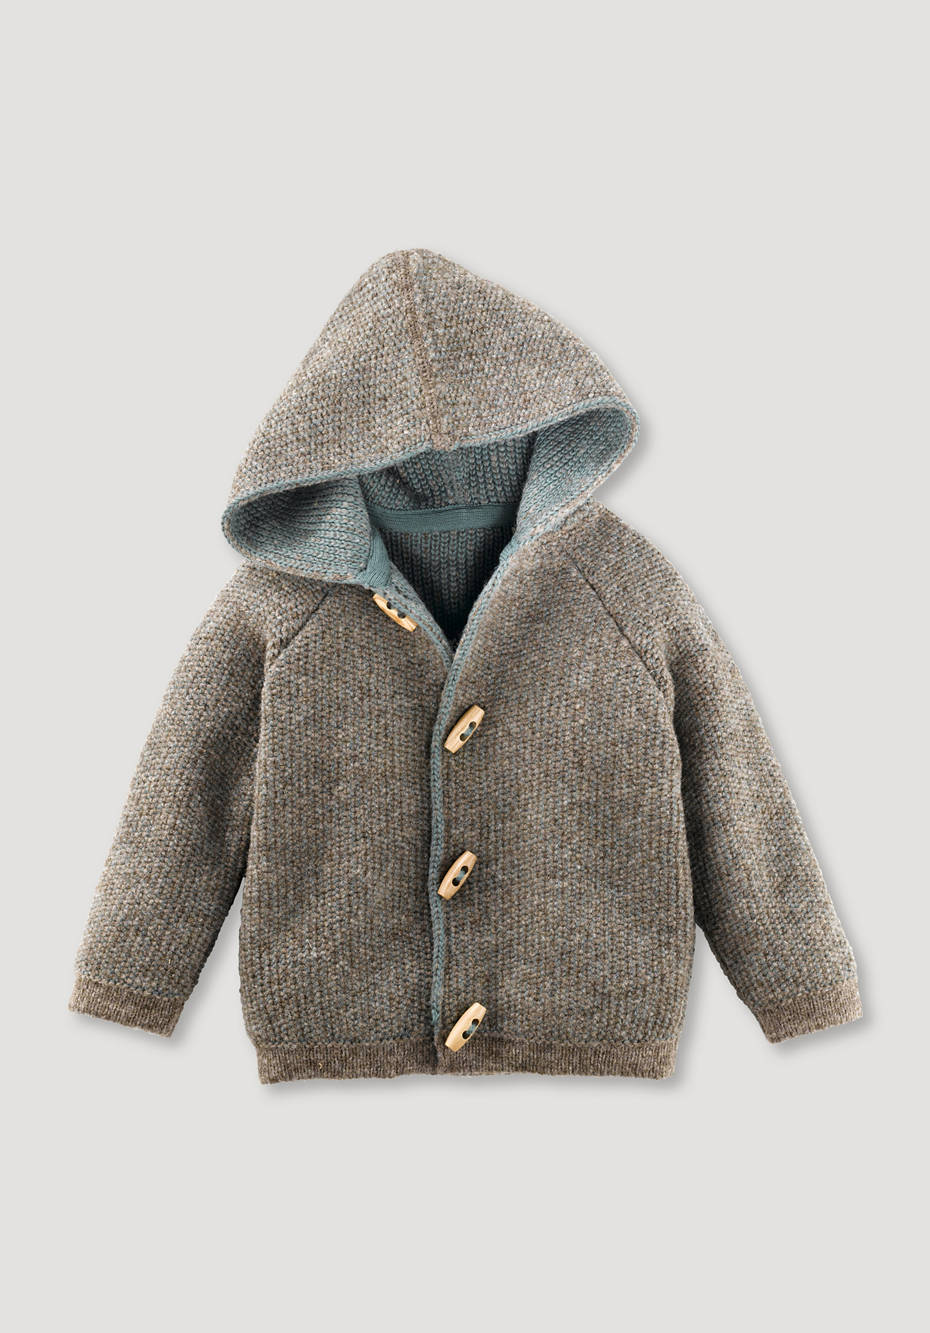 Cardigan made of new wool and cotton